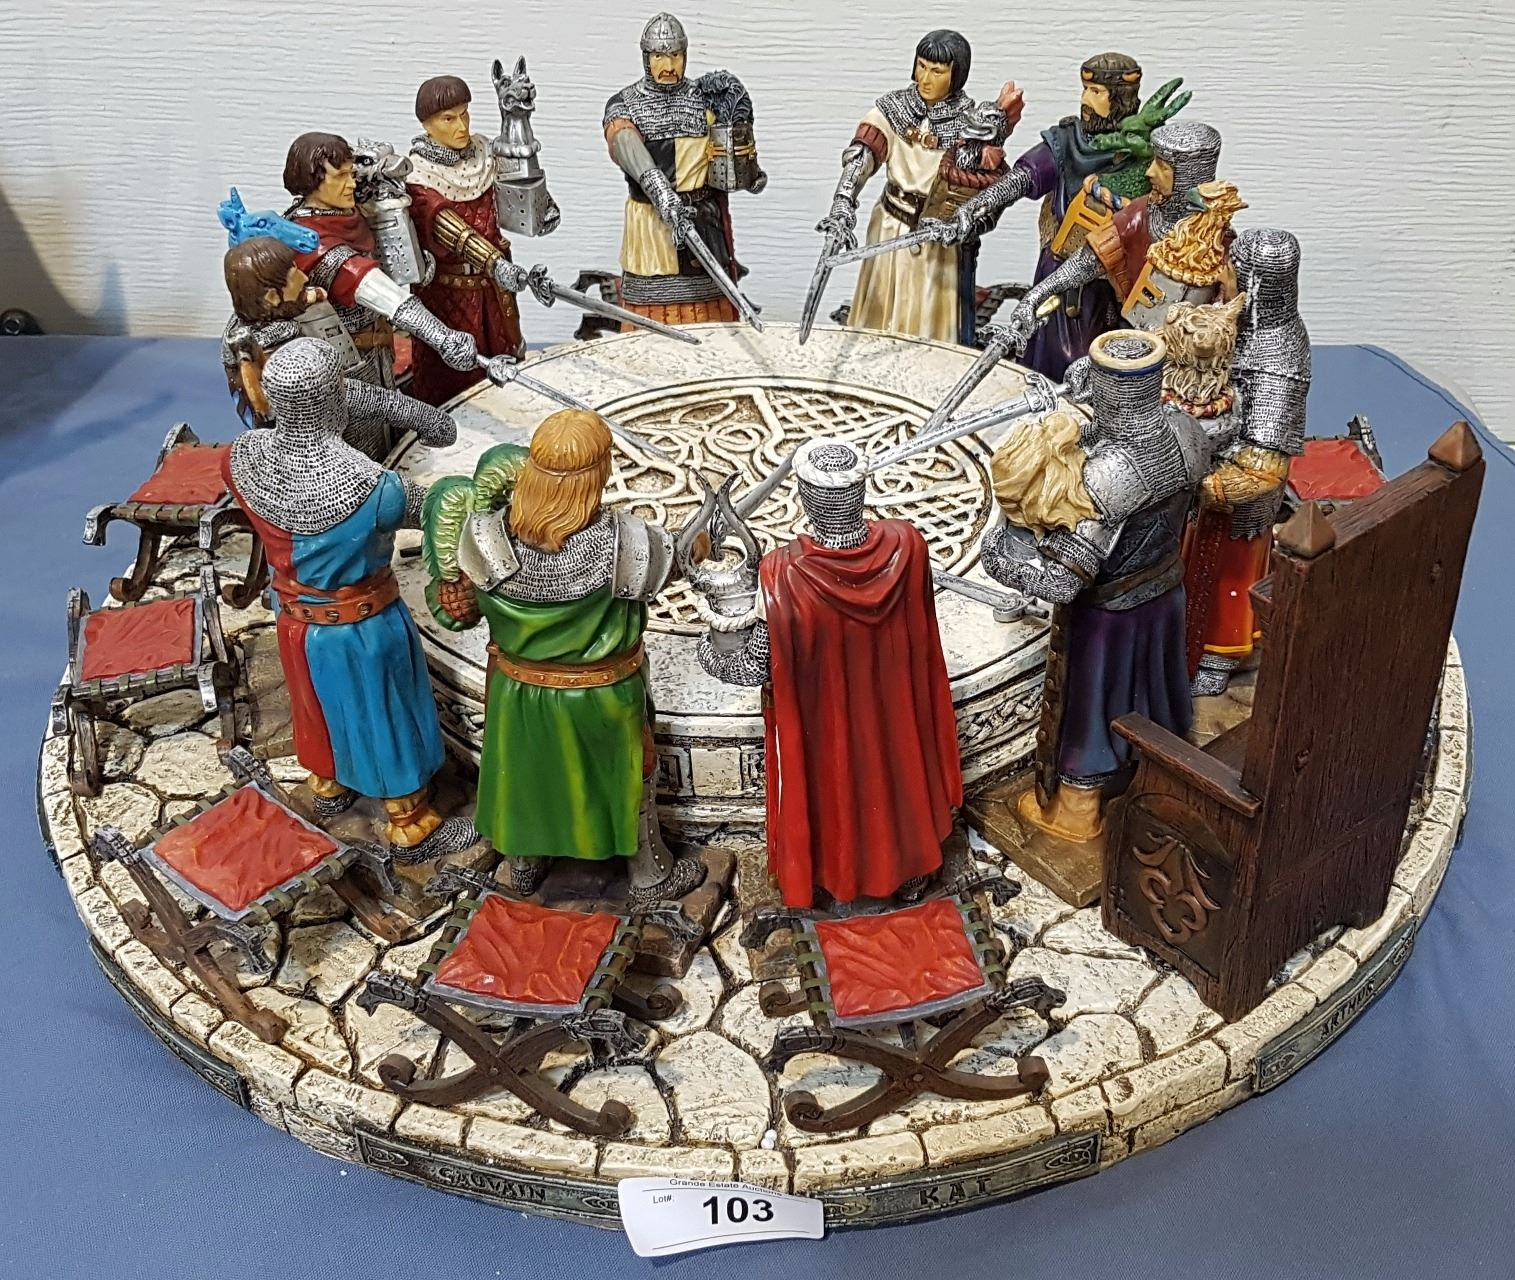 King arthur and the knights of the round table large diorama - King arthur and the knights of the round table ...